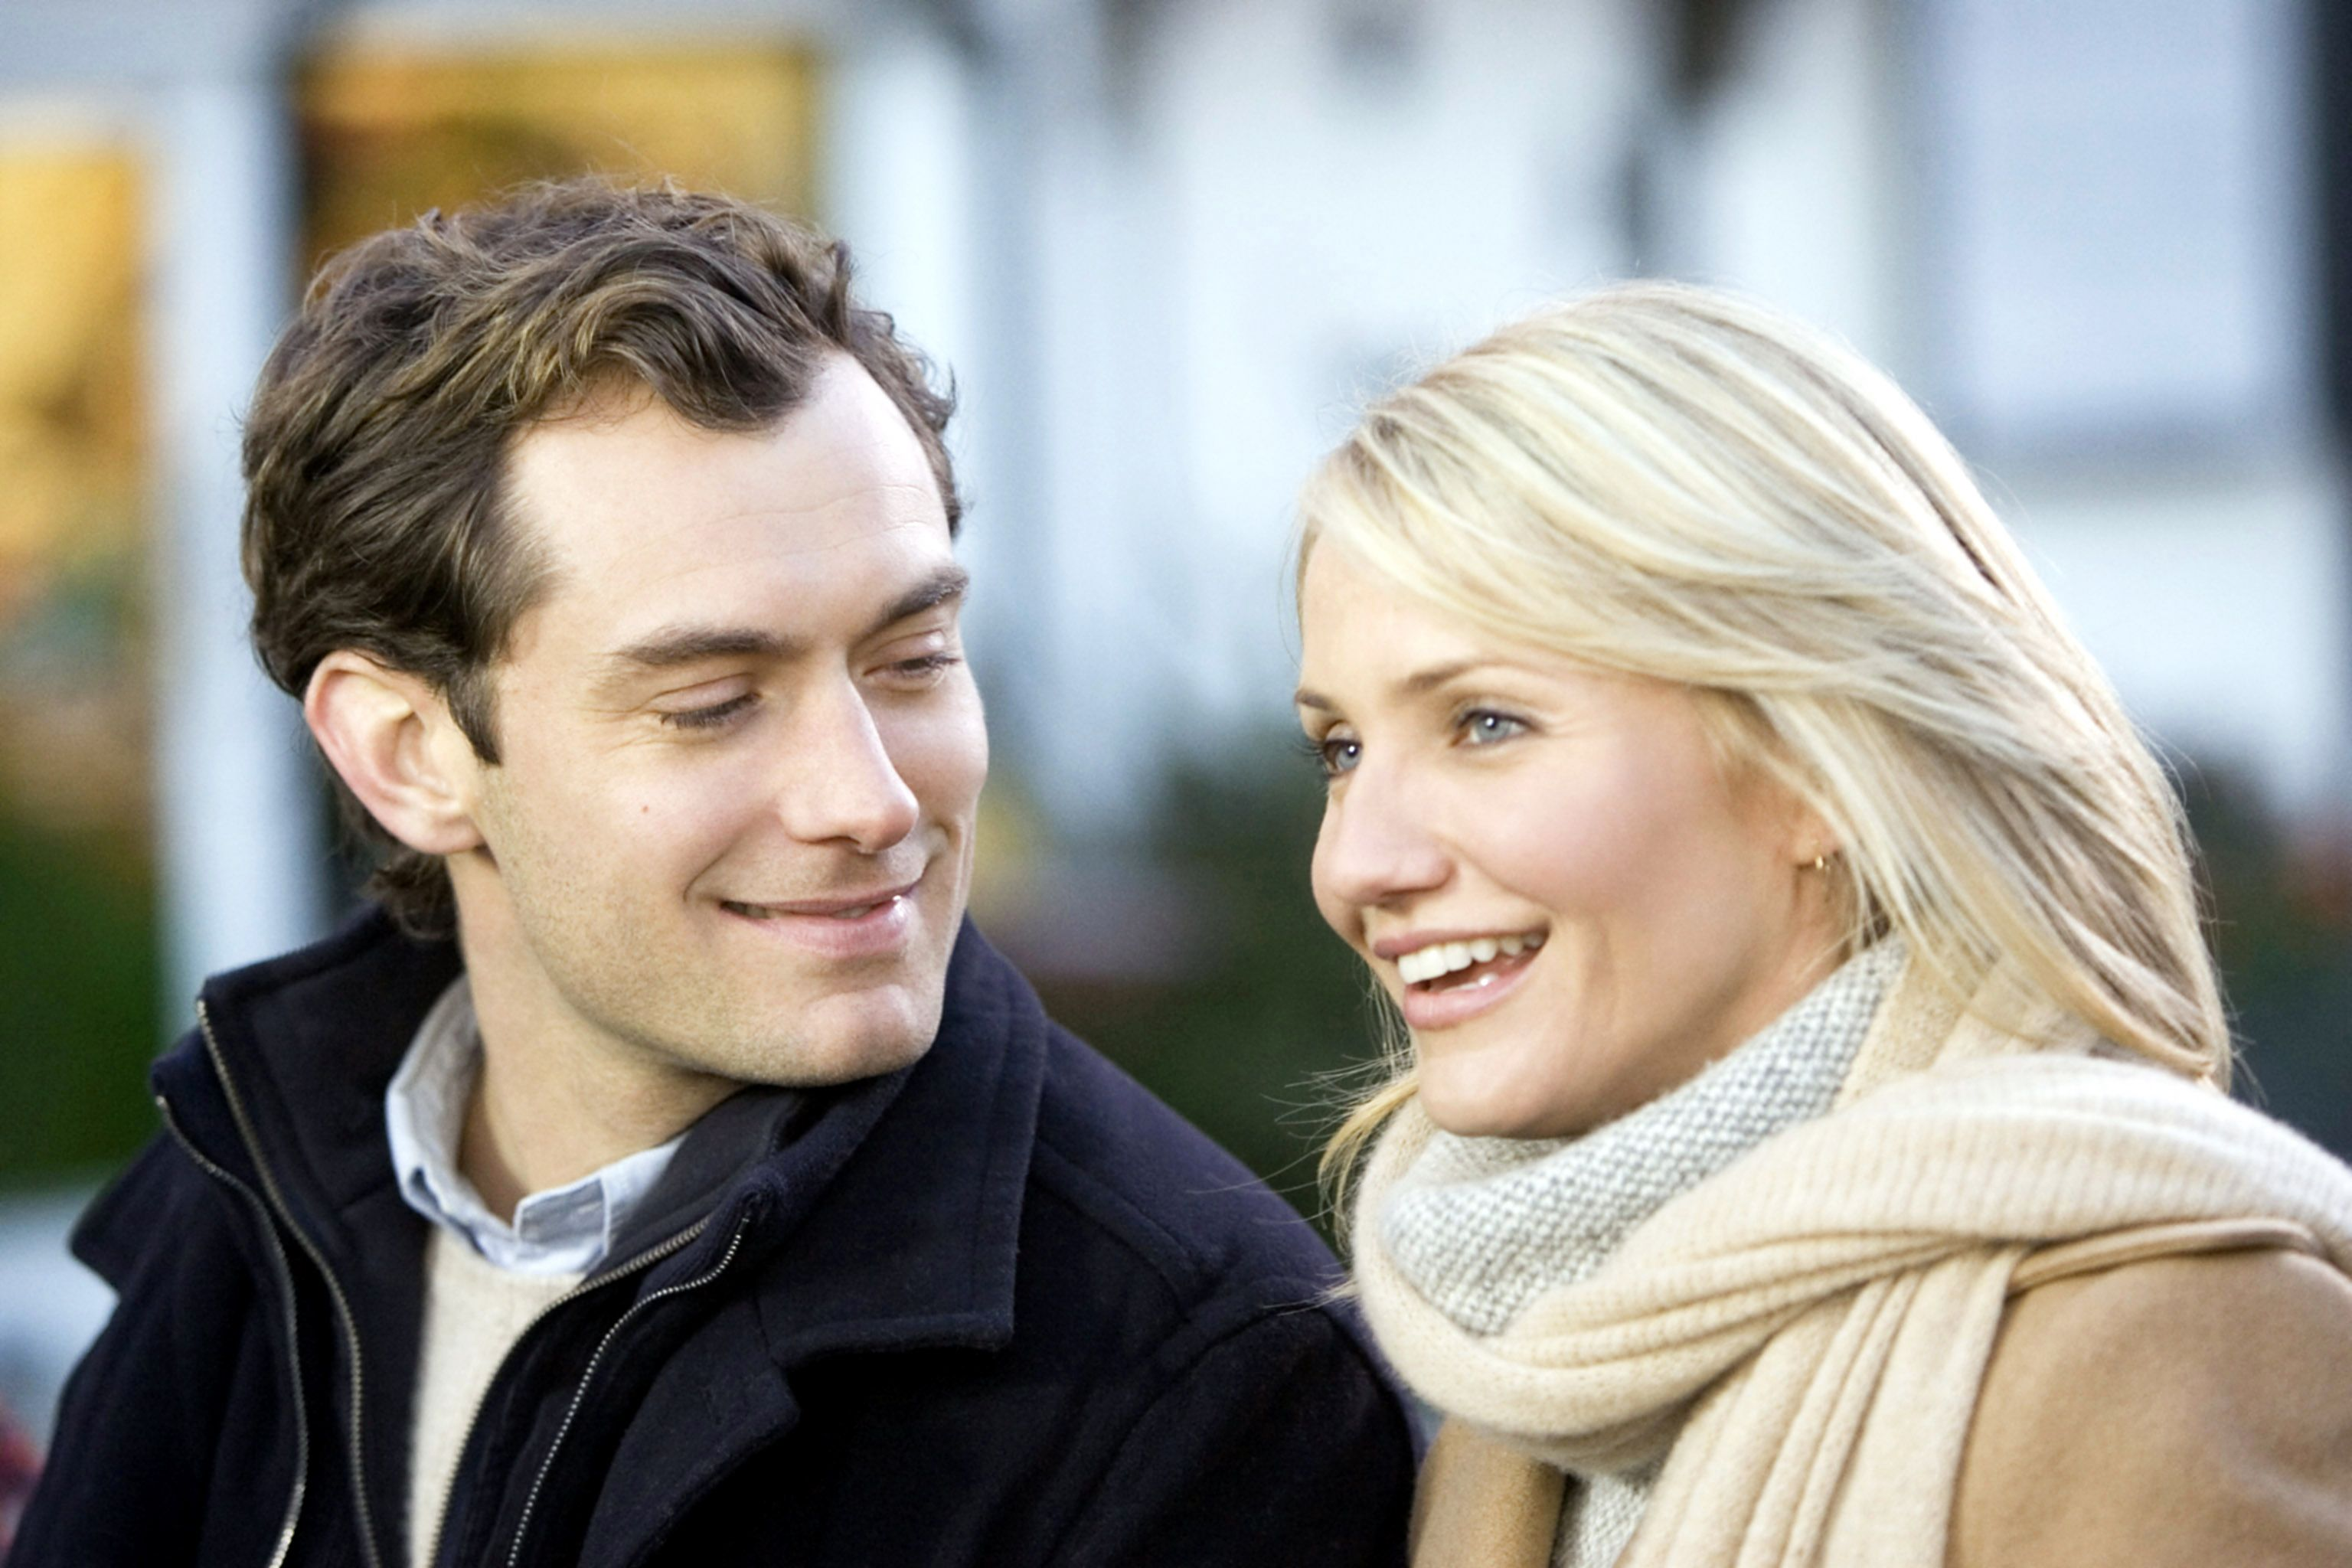 The Holiday (2006) Everyone knows that when the heroine claims she needs a vacation from love, that's when it hits the hardest. In this frequent Christmas rewatch, two down-on-romantic-luck women from across the pond (Kate Winslet and Cameron Diaz) swap houses for the holidays, and despite their intentions or expectations, each falls for a guy (Jack Black and Jude Law).